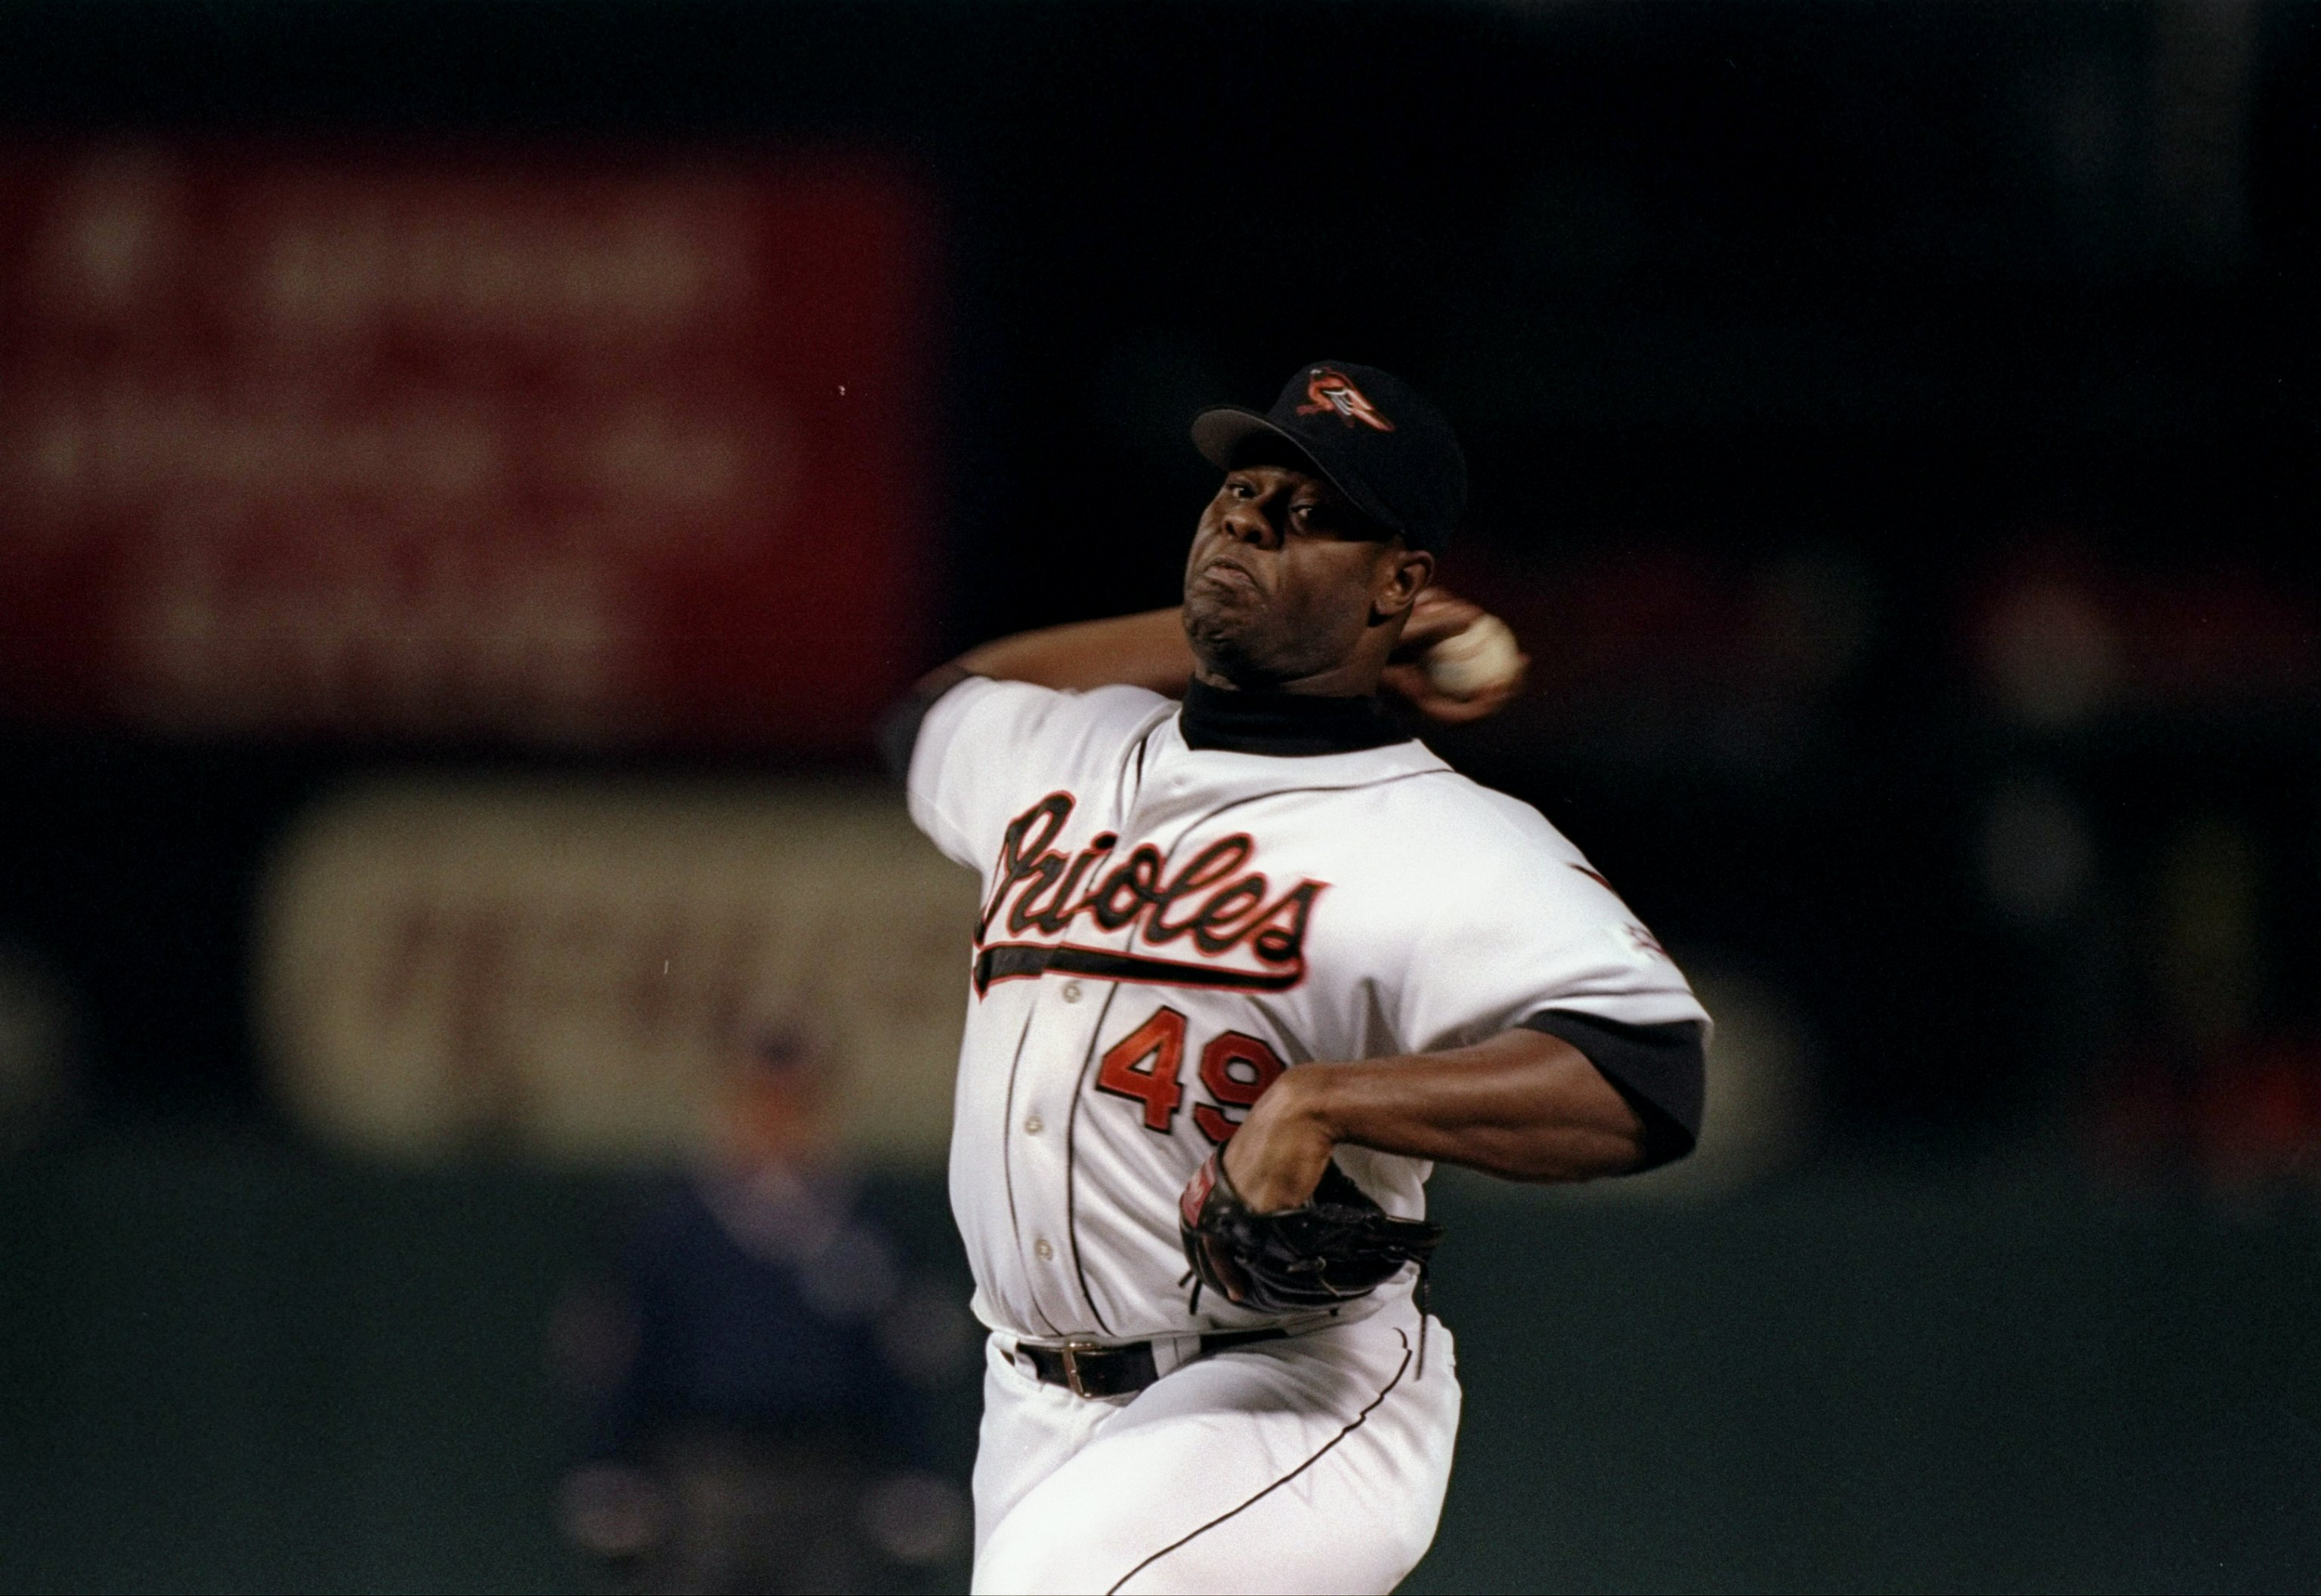 15 Oct 1997: Pitcher Armando Benitez of the Baltimore Orioles throws a pitch during game six of the American League Championship against the Cleveland Indians at Camden Yards in Baltimore, Orioles. The Indians won the game 1-0.